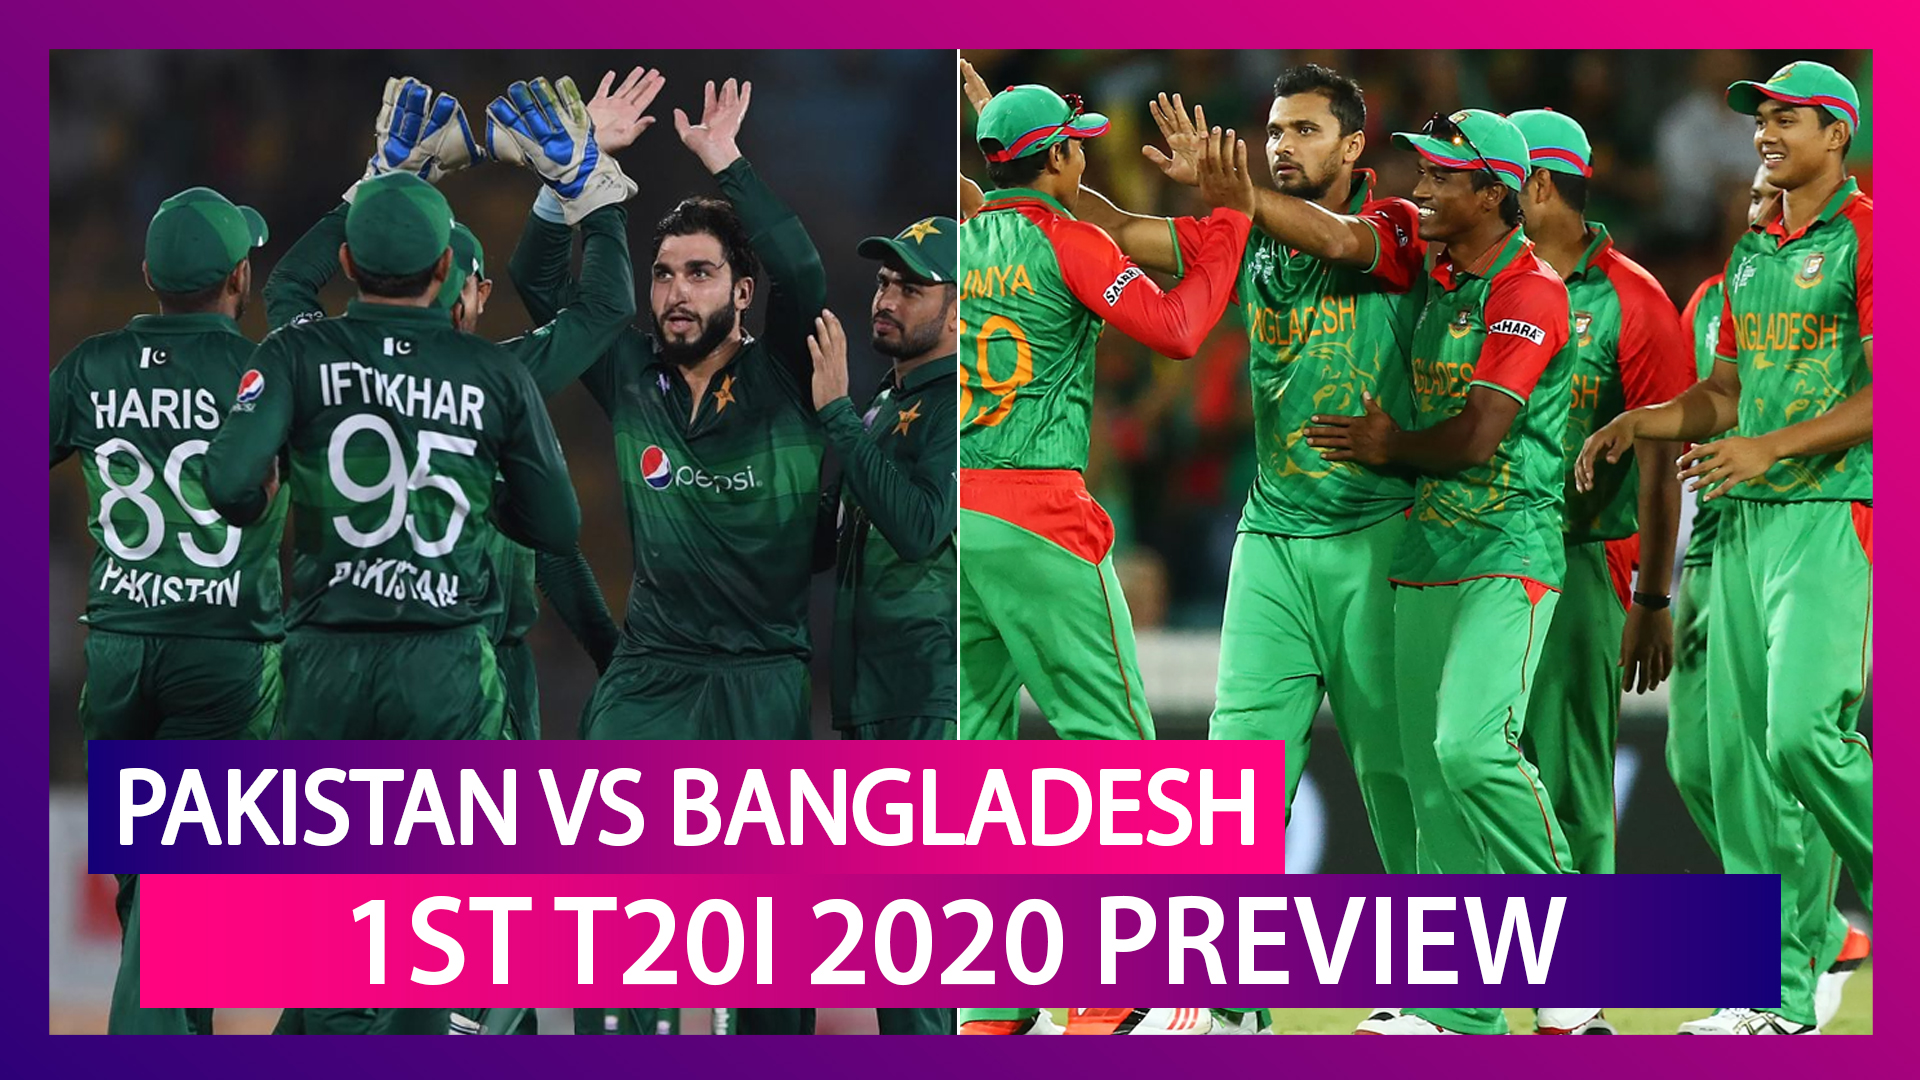 PAK vs BAN, 1st T20I 2020 Preview: Pakistan, Bangladesh Begin T20 World Cup Preparations